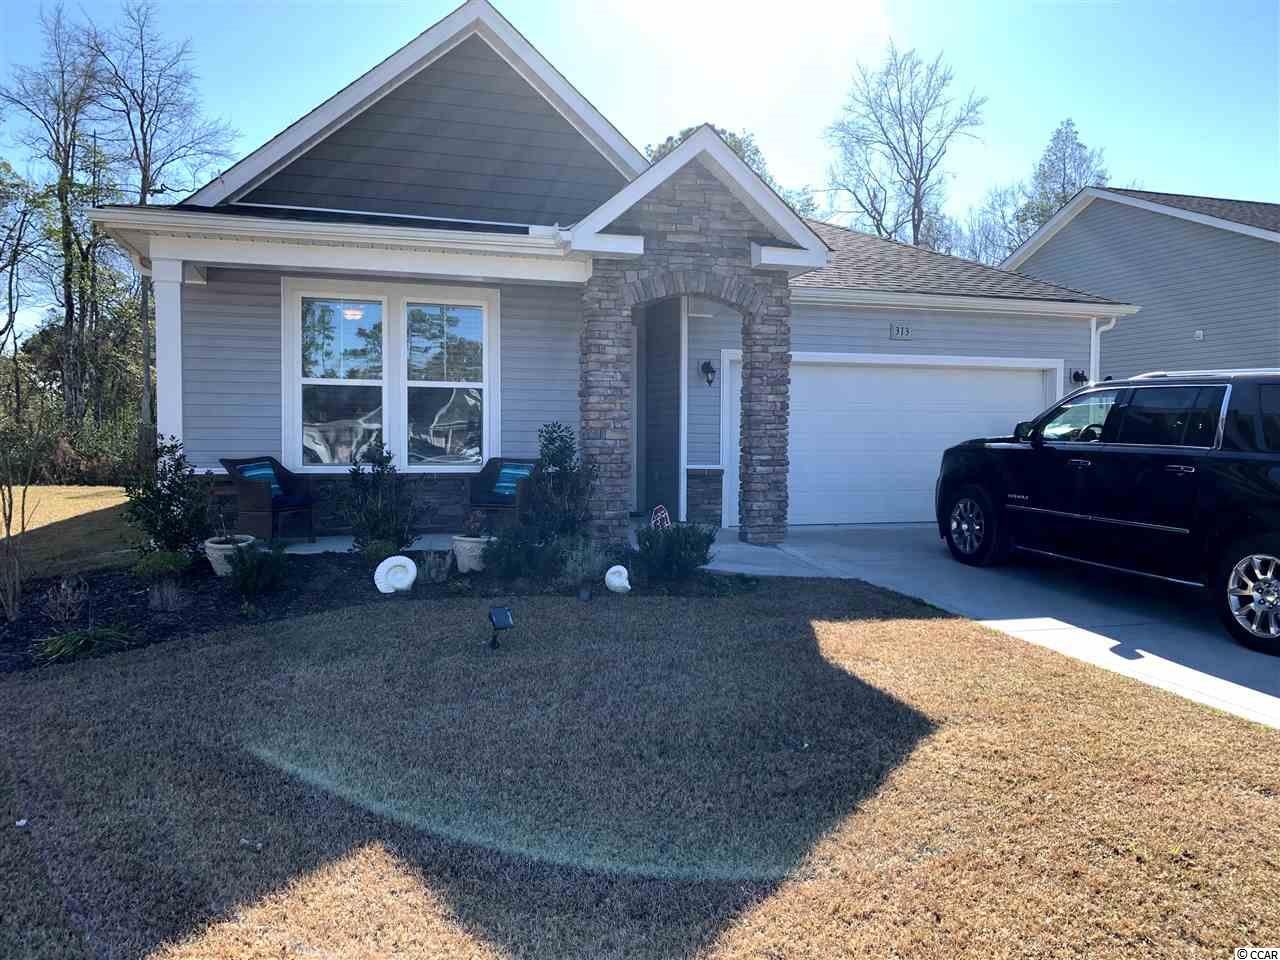 Like New, H&H Homes, Eden plan completed in 10/2017.  Current owners down sized to this home in 10/2018. Don't miss your opportunity to move into this Charming Cottage at Shaftesbury Glen. This home has 5' vinyl laminate flooring running throughout Family Room, Kitchen and Breakfast nook.  Kitchen, breakfast nook and living areas are open concept.  Large island with sink, large pantry, and upgraded Level 2 granite counter tops allow for easy entertaining and living. This home has a split bedroom plan so the spacious Master Suite is tucked away for privacy and includes its own Master Ensuite with double sinks, large walk in shower with bench, linen closet, water closet and large walk in closet. Flex Room is being used as a formal dining room with upgraded French doors, could easily be used as a third bedroom.  Front bedroom is a rarely used guest bedroom.  Drop Zone just outside laundry area offers storage and organization for coats and shoes when coming in from the 2 car garage.  Built with 30 year shingles. Original upgrades include alarm system, 3 windows in dining area, trim package, bay windows in breakfast nook area and master bedroom, French doors, drop zone, 5 inch vinyl laminate flooring, Elevation C stone facade on front of cottage. Owner added upgrades to include plantation blinds throughout, ceiling fans, storm doors at front entrance and back door; Shelving in garage; Additional patio concrete extended to 10 x 19 ft.; Sunsetter motorized, retractible awning with wind sensor and matching Power Screen to create enclosed patio space.  Patio has ceiling fan and mounted TV(cable added); 5 ft. Black aluminum fencing around back yard and additional knock out roses along outer rear fence wall.  Home backs up to woods/back of golf course. Some furniture negotiable, tv mounts being left.  TV's in living room and bedrooms will Not stay.  TV on patio will stay.  Receipts included for new upgrades. Don't forget your amenities package! Golf membership for life (pendin